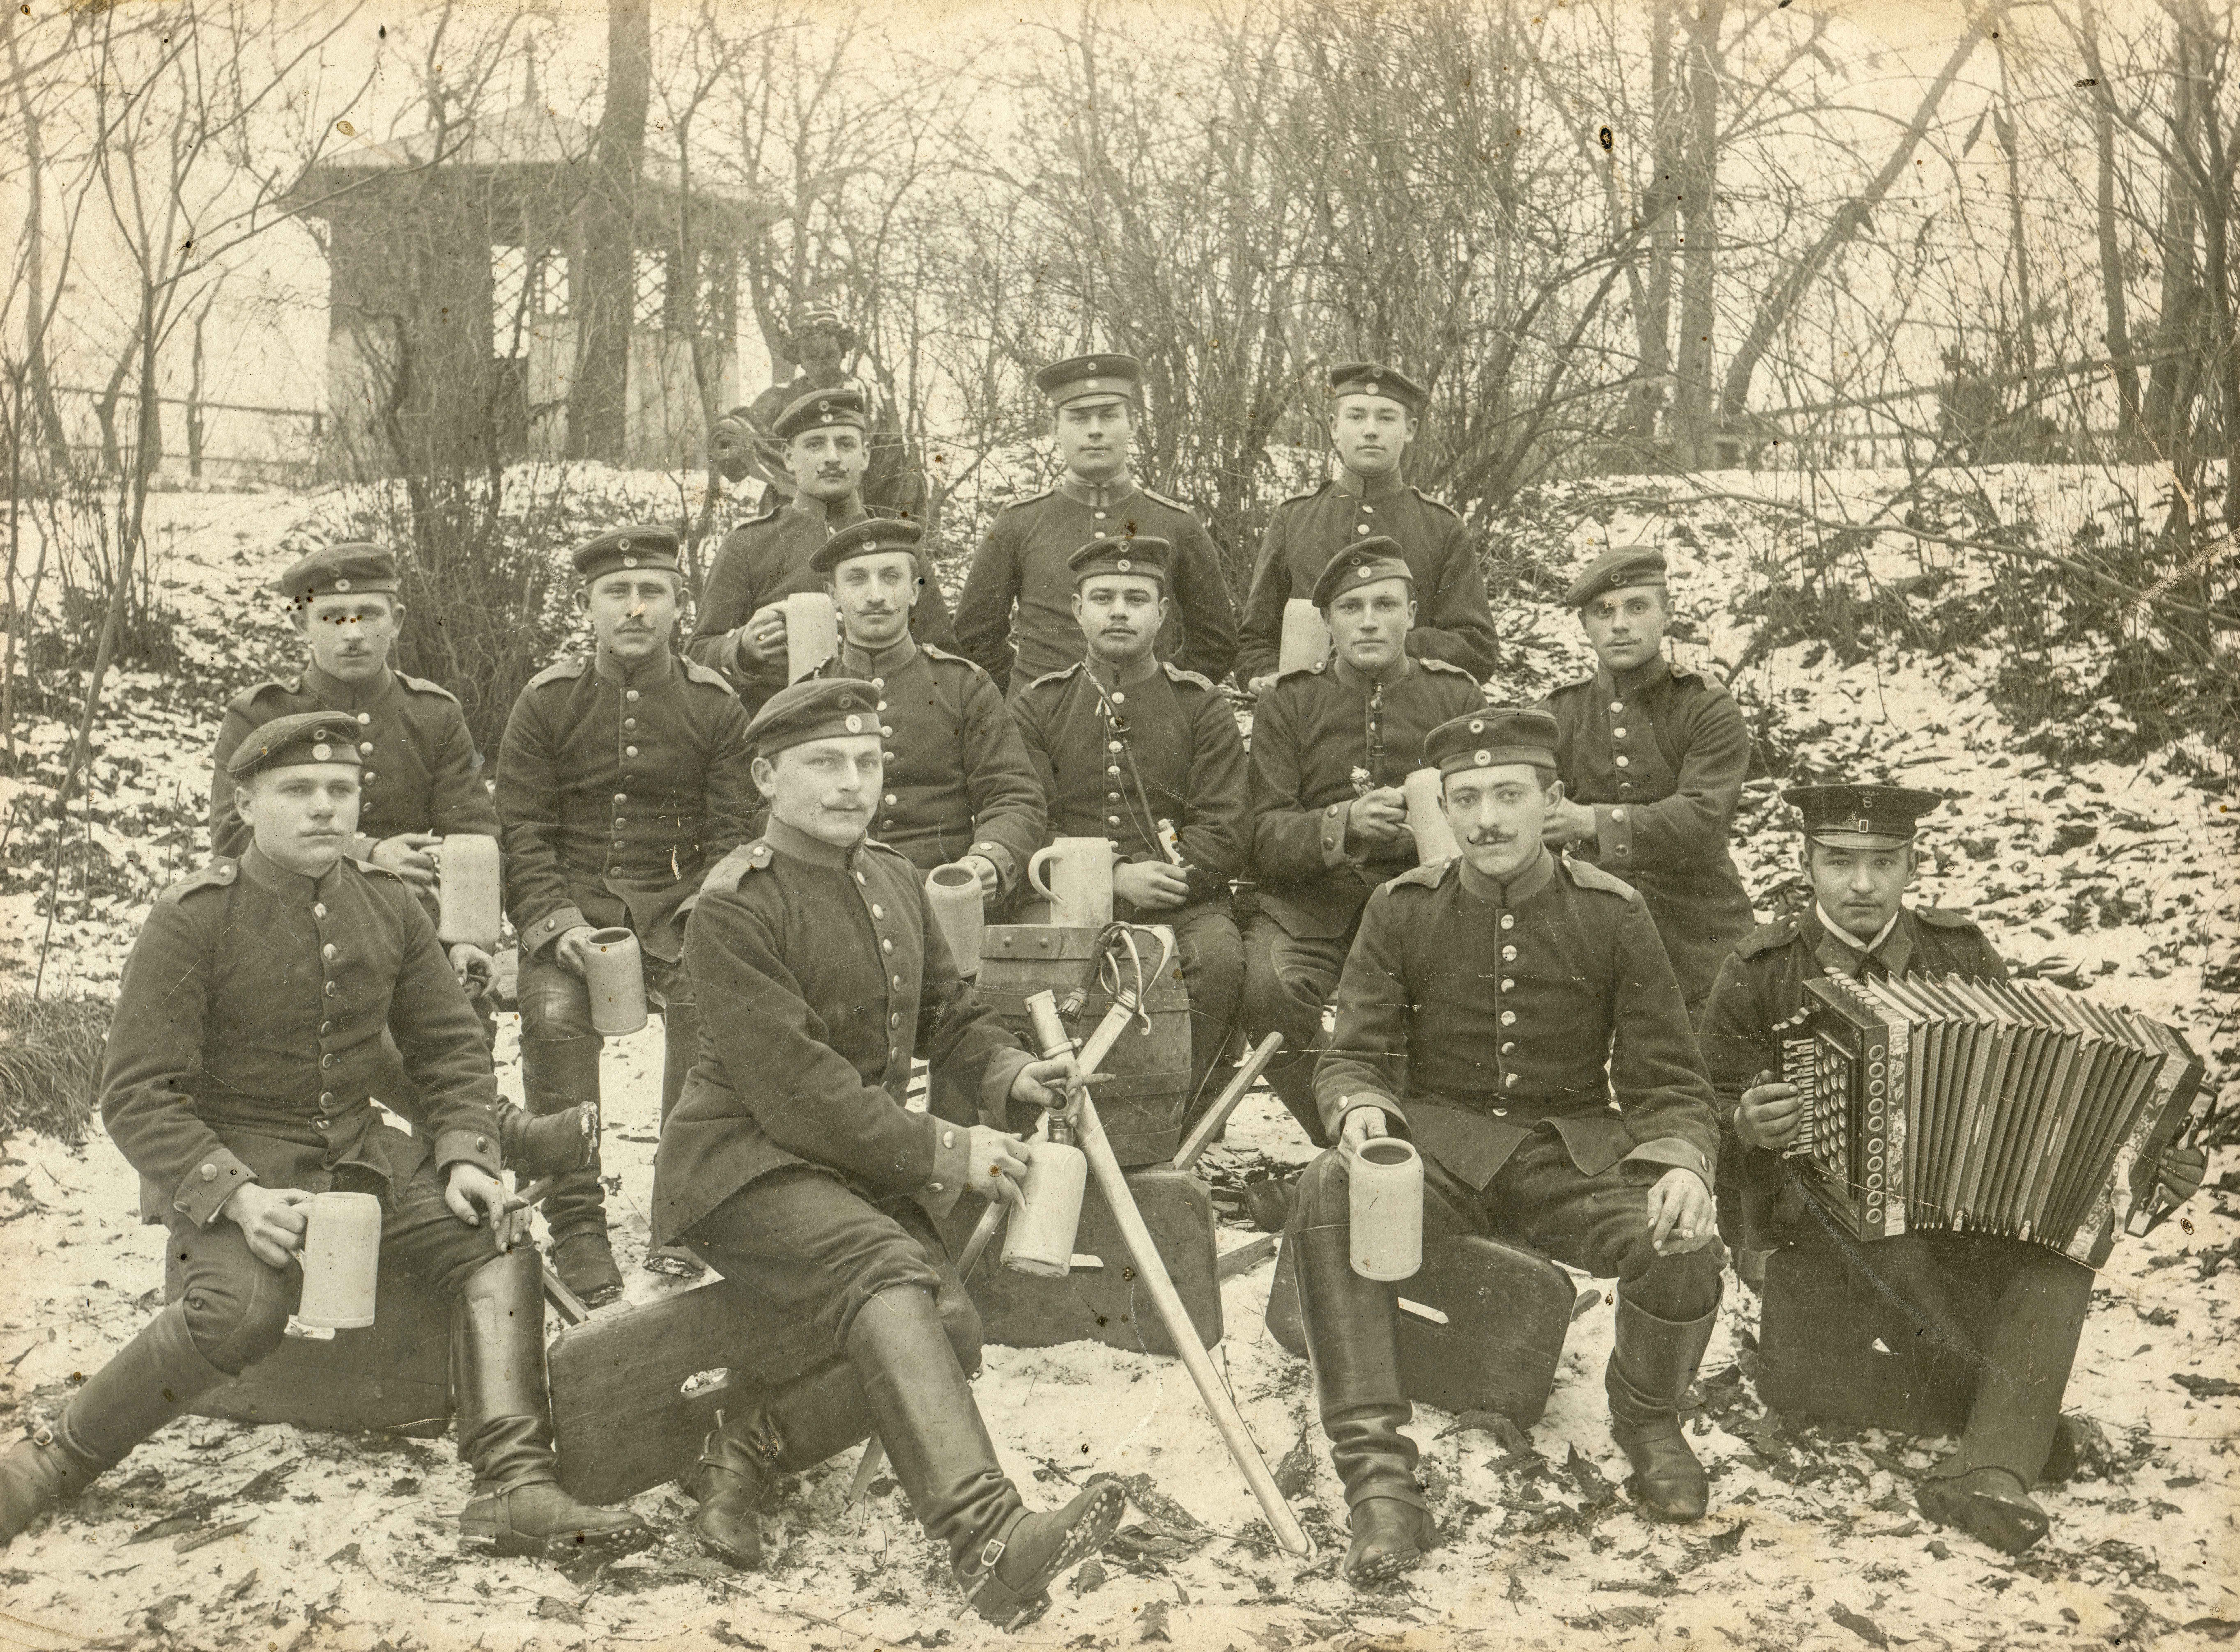 An Antique German WW1 Army Troupe Photograph 1